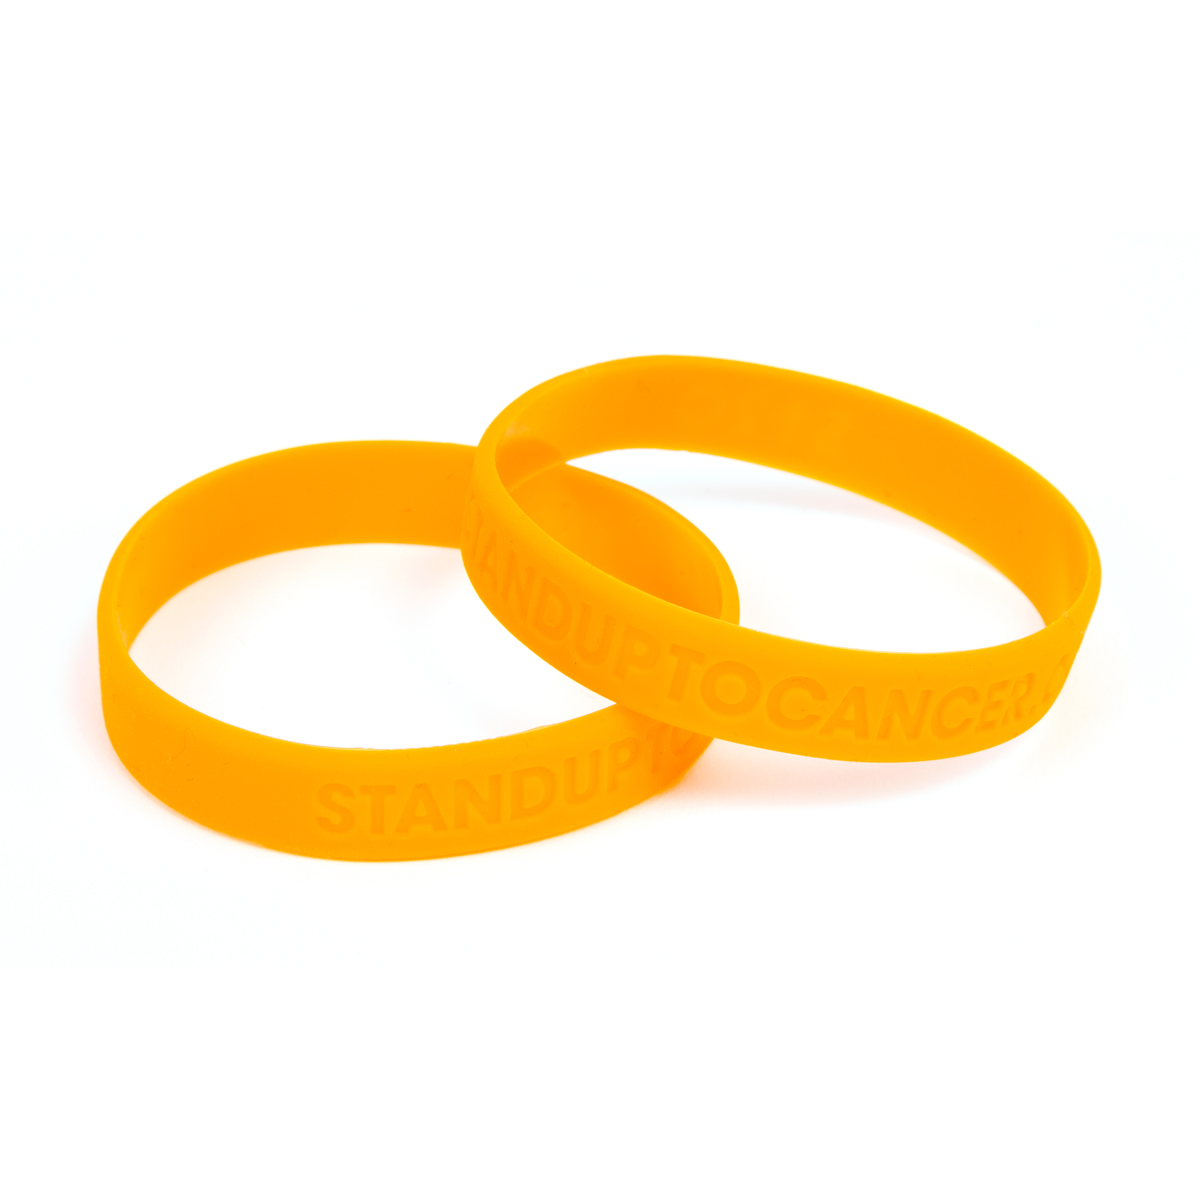 SU2C Official Wristband Bundle (Set of 2)